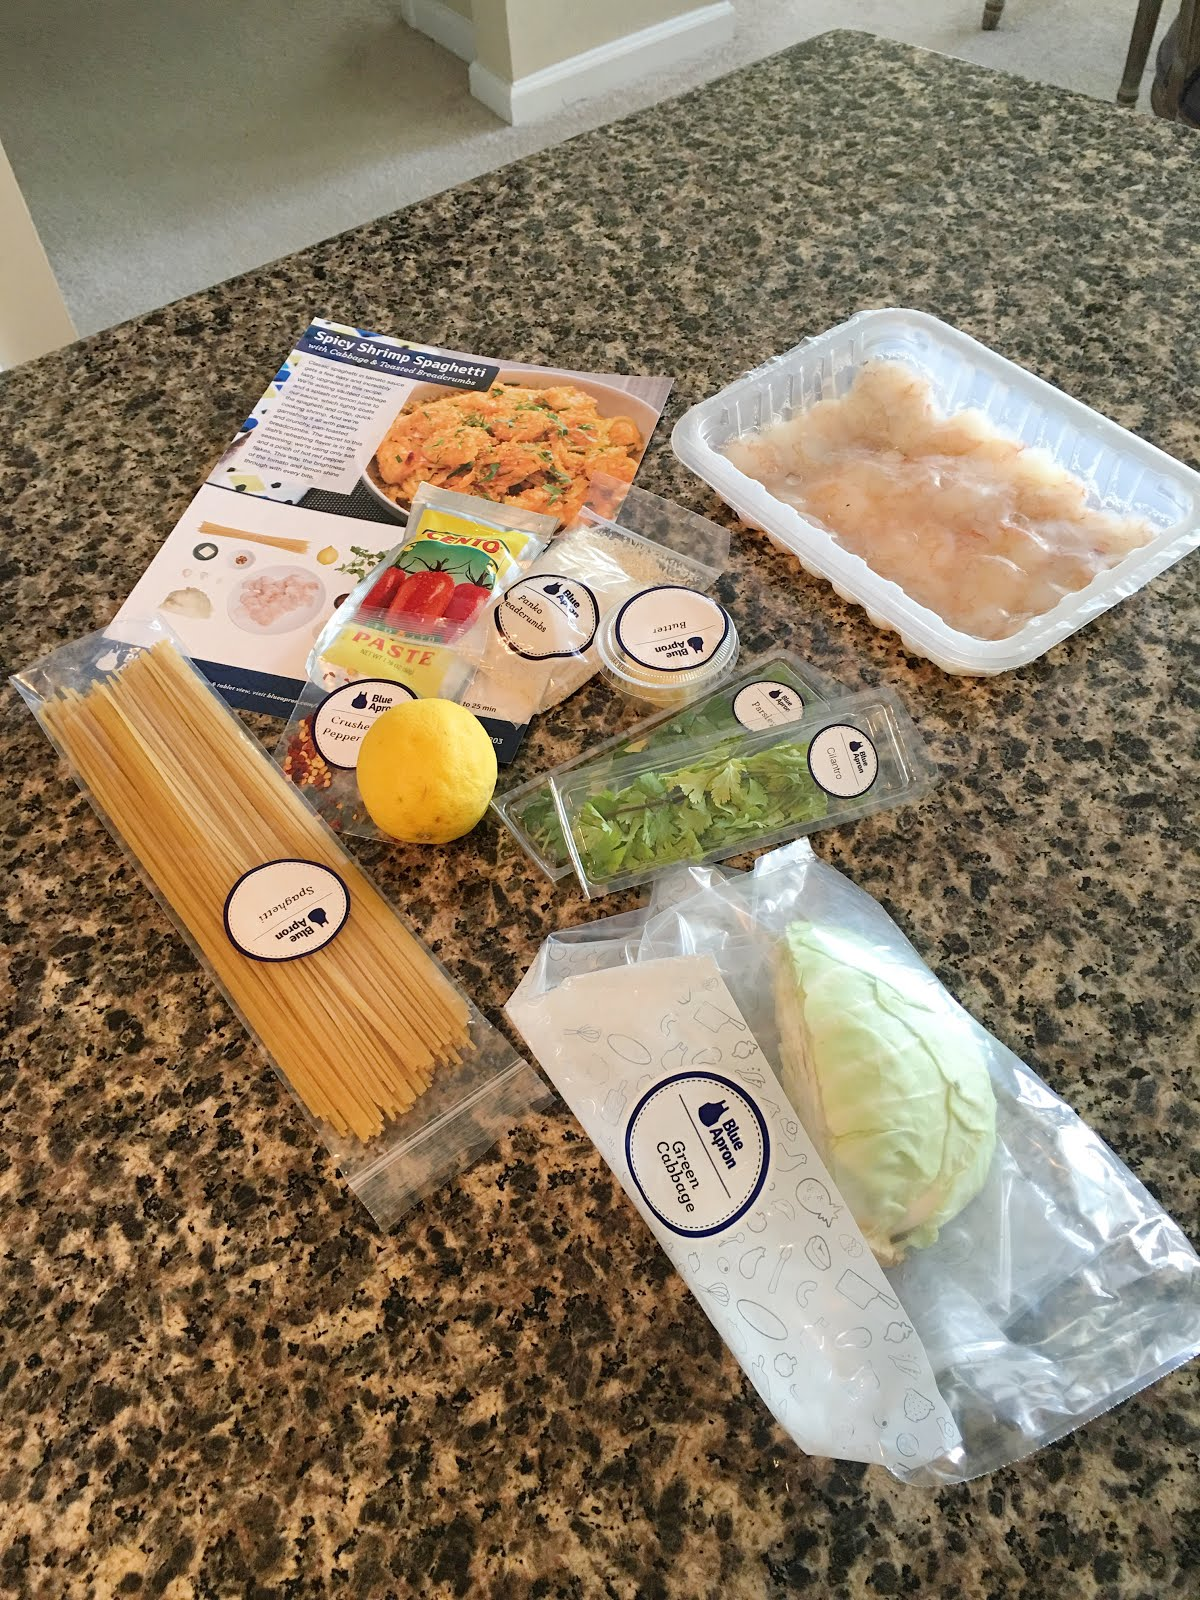 Blue apron yellow grits - I Would Never Have Thought To Cook Cabbage In Butter Or To Put It In Spaghetti For That Matter But It Was Delicious Now I Wouldn T Be Me If I Didn T Make